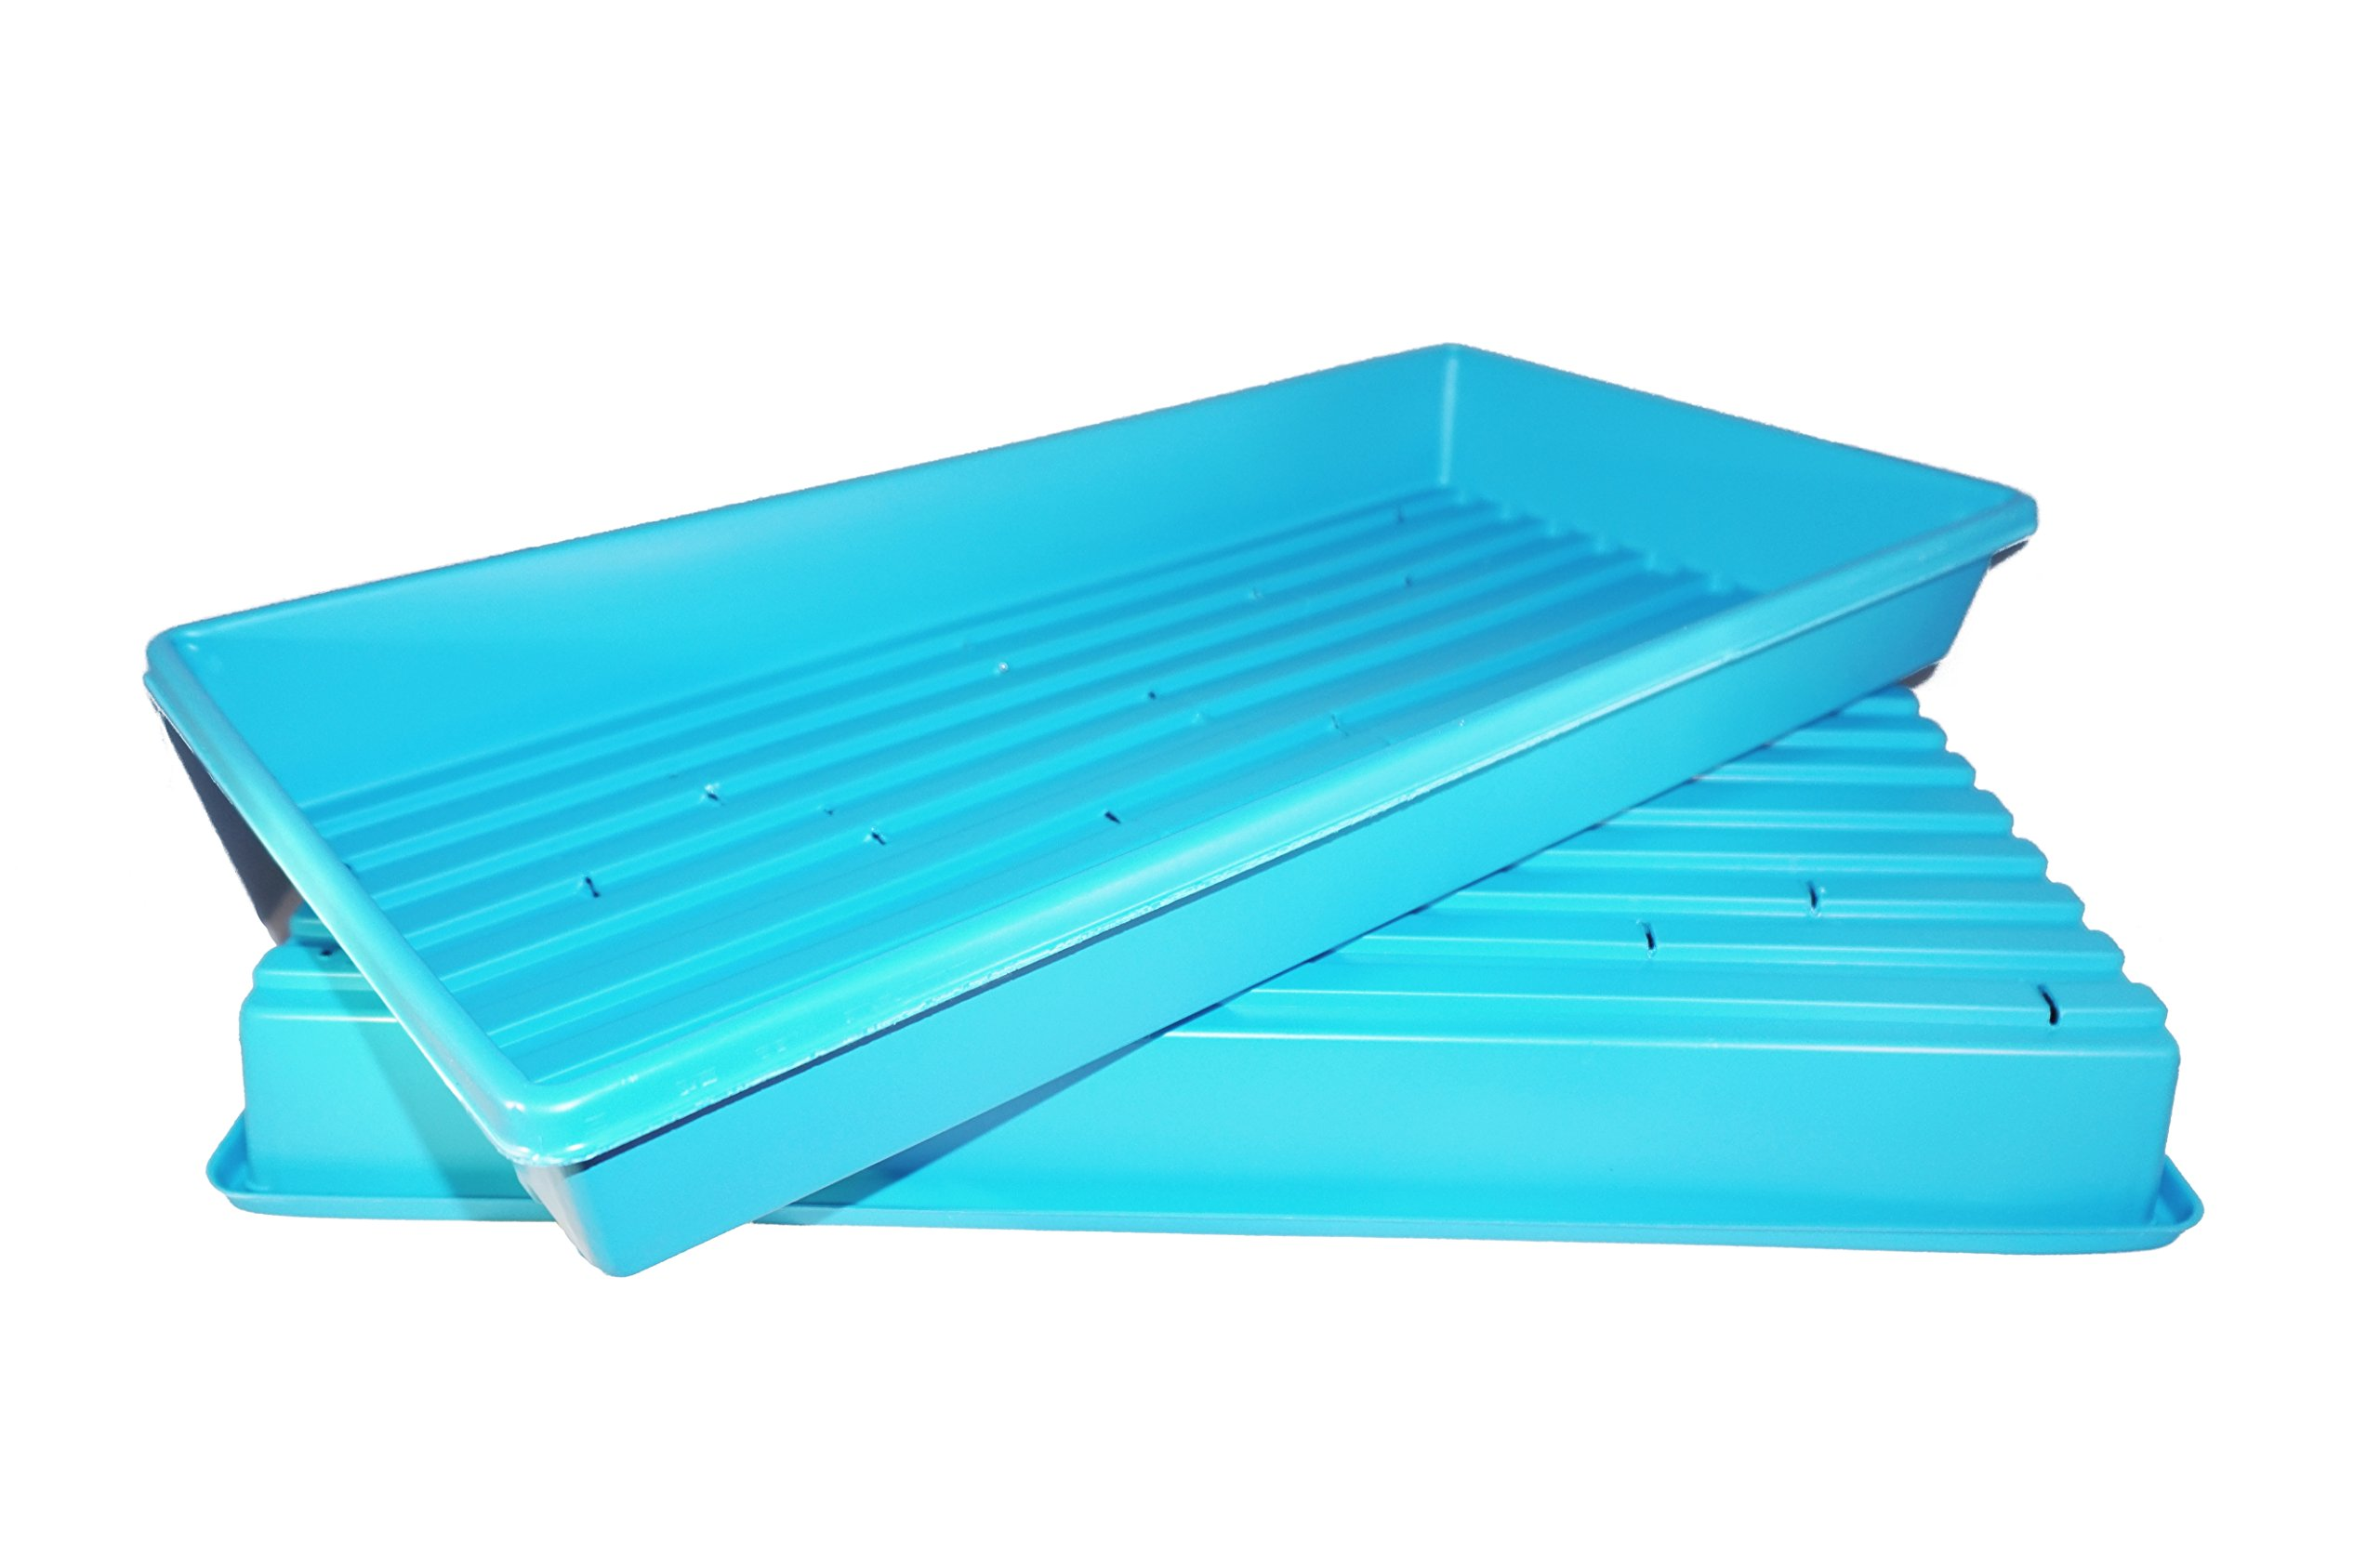 Heavy Duty, Made in USA, 1020 Growing Tray for garden seeds, Microgreens, Wheatgrass (With Drain Holes)